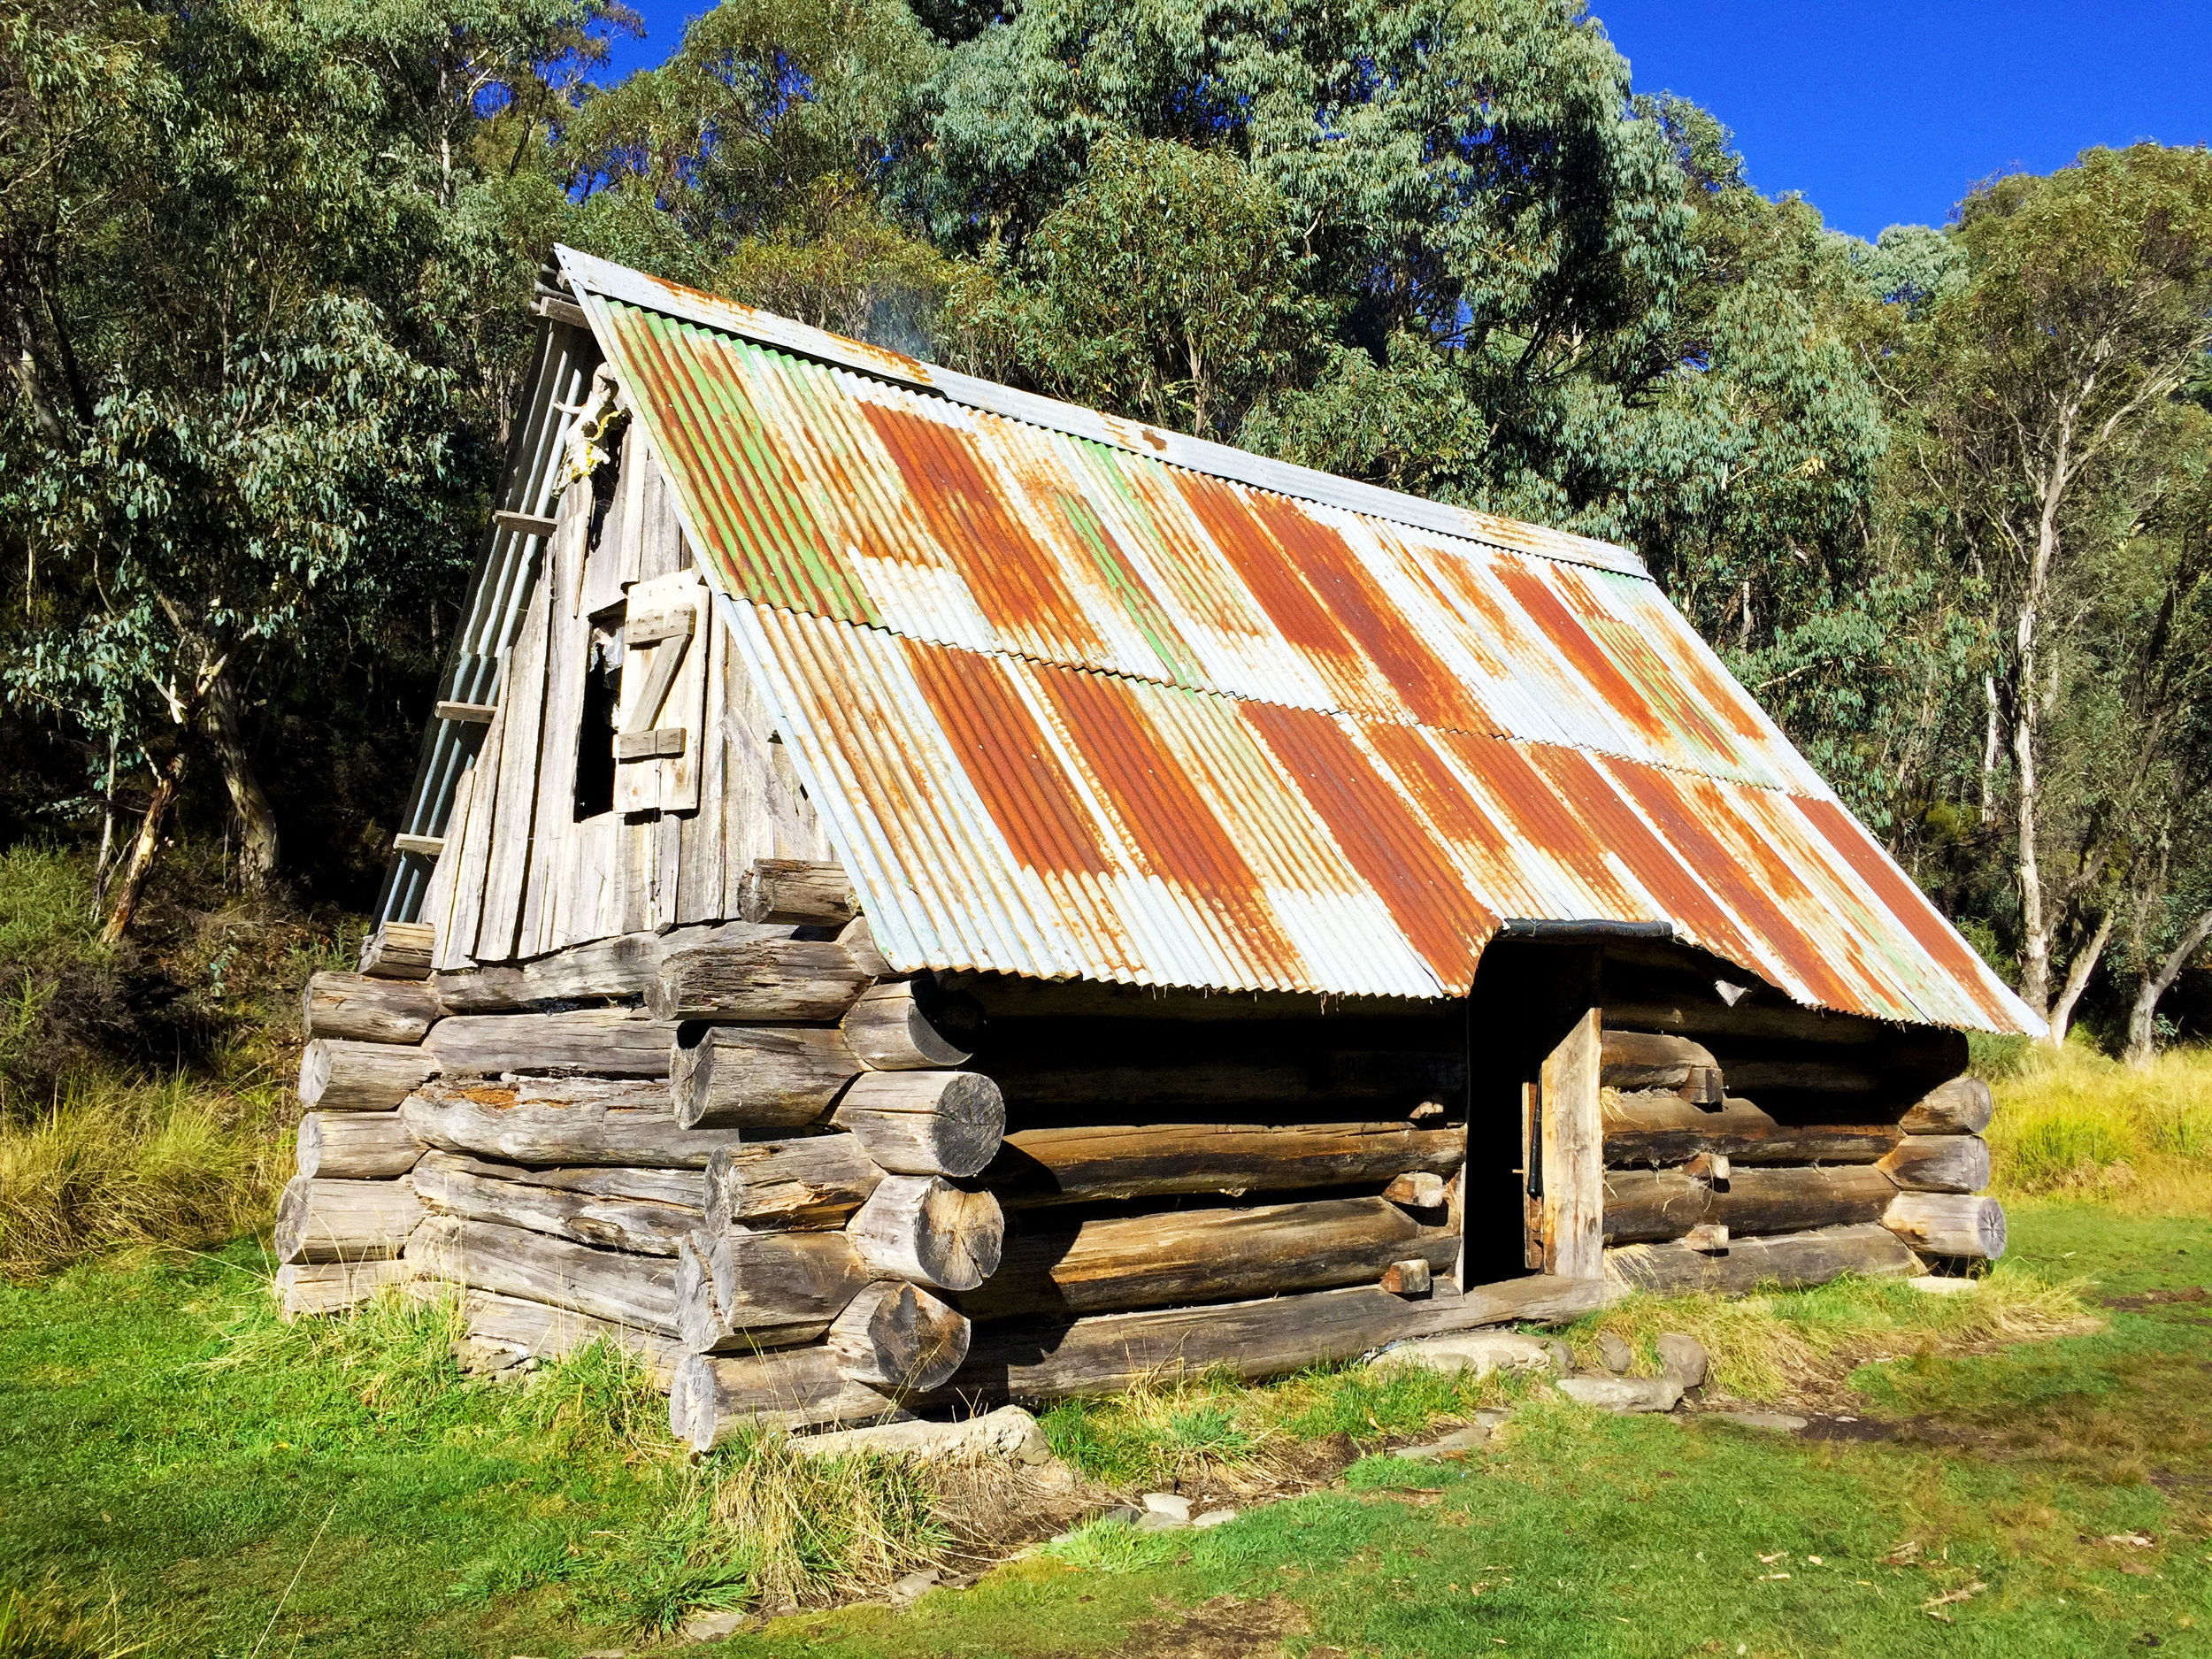 The iconic Dibbin Hut seated on the plains of the Cobungra River